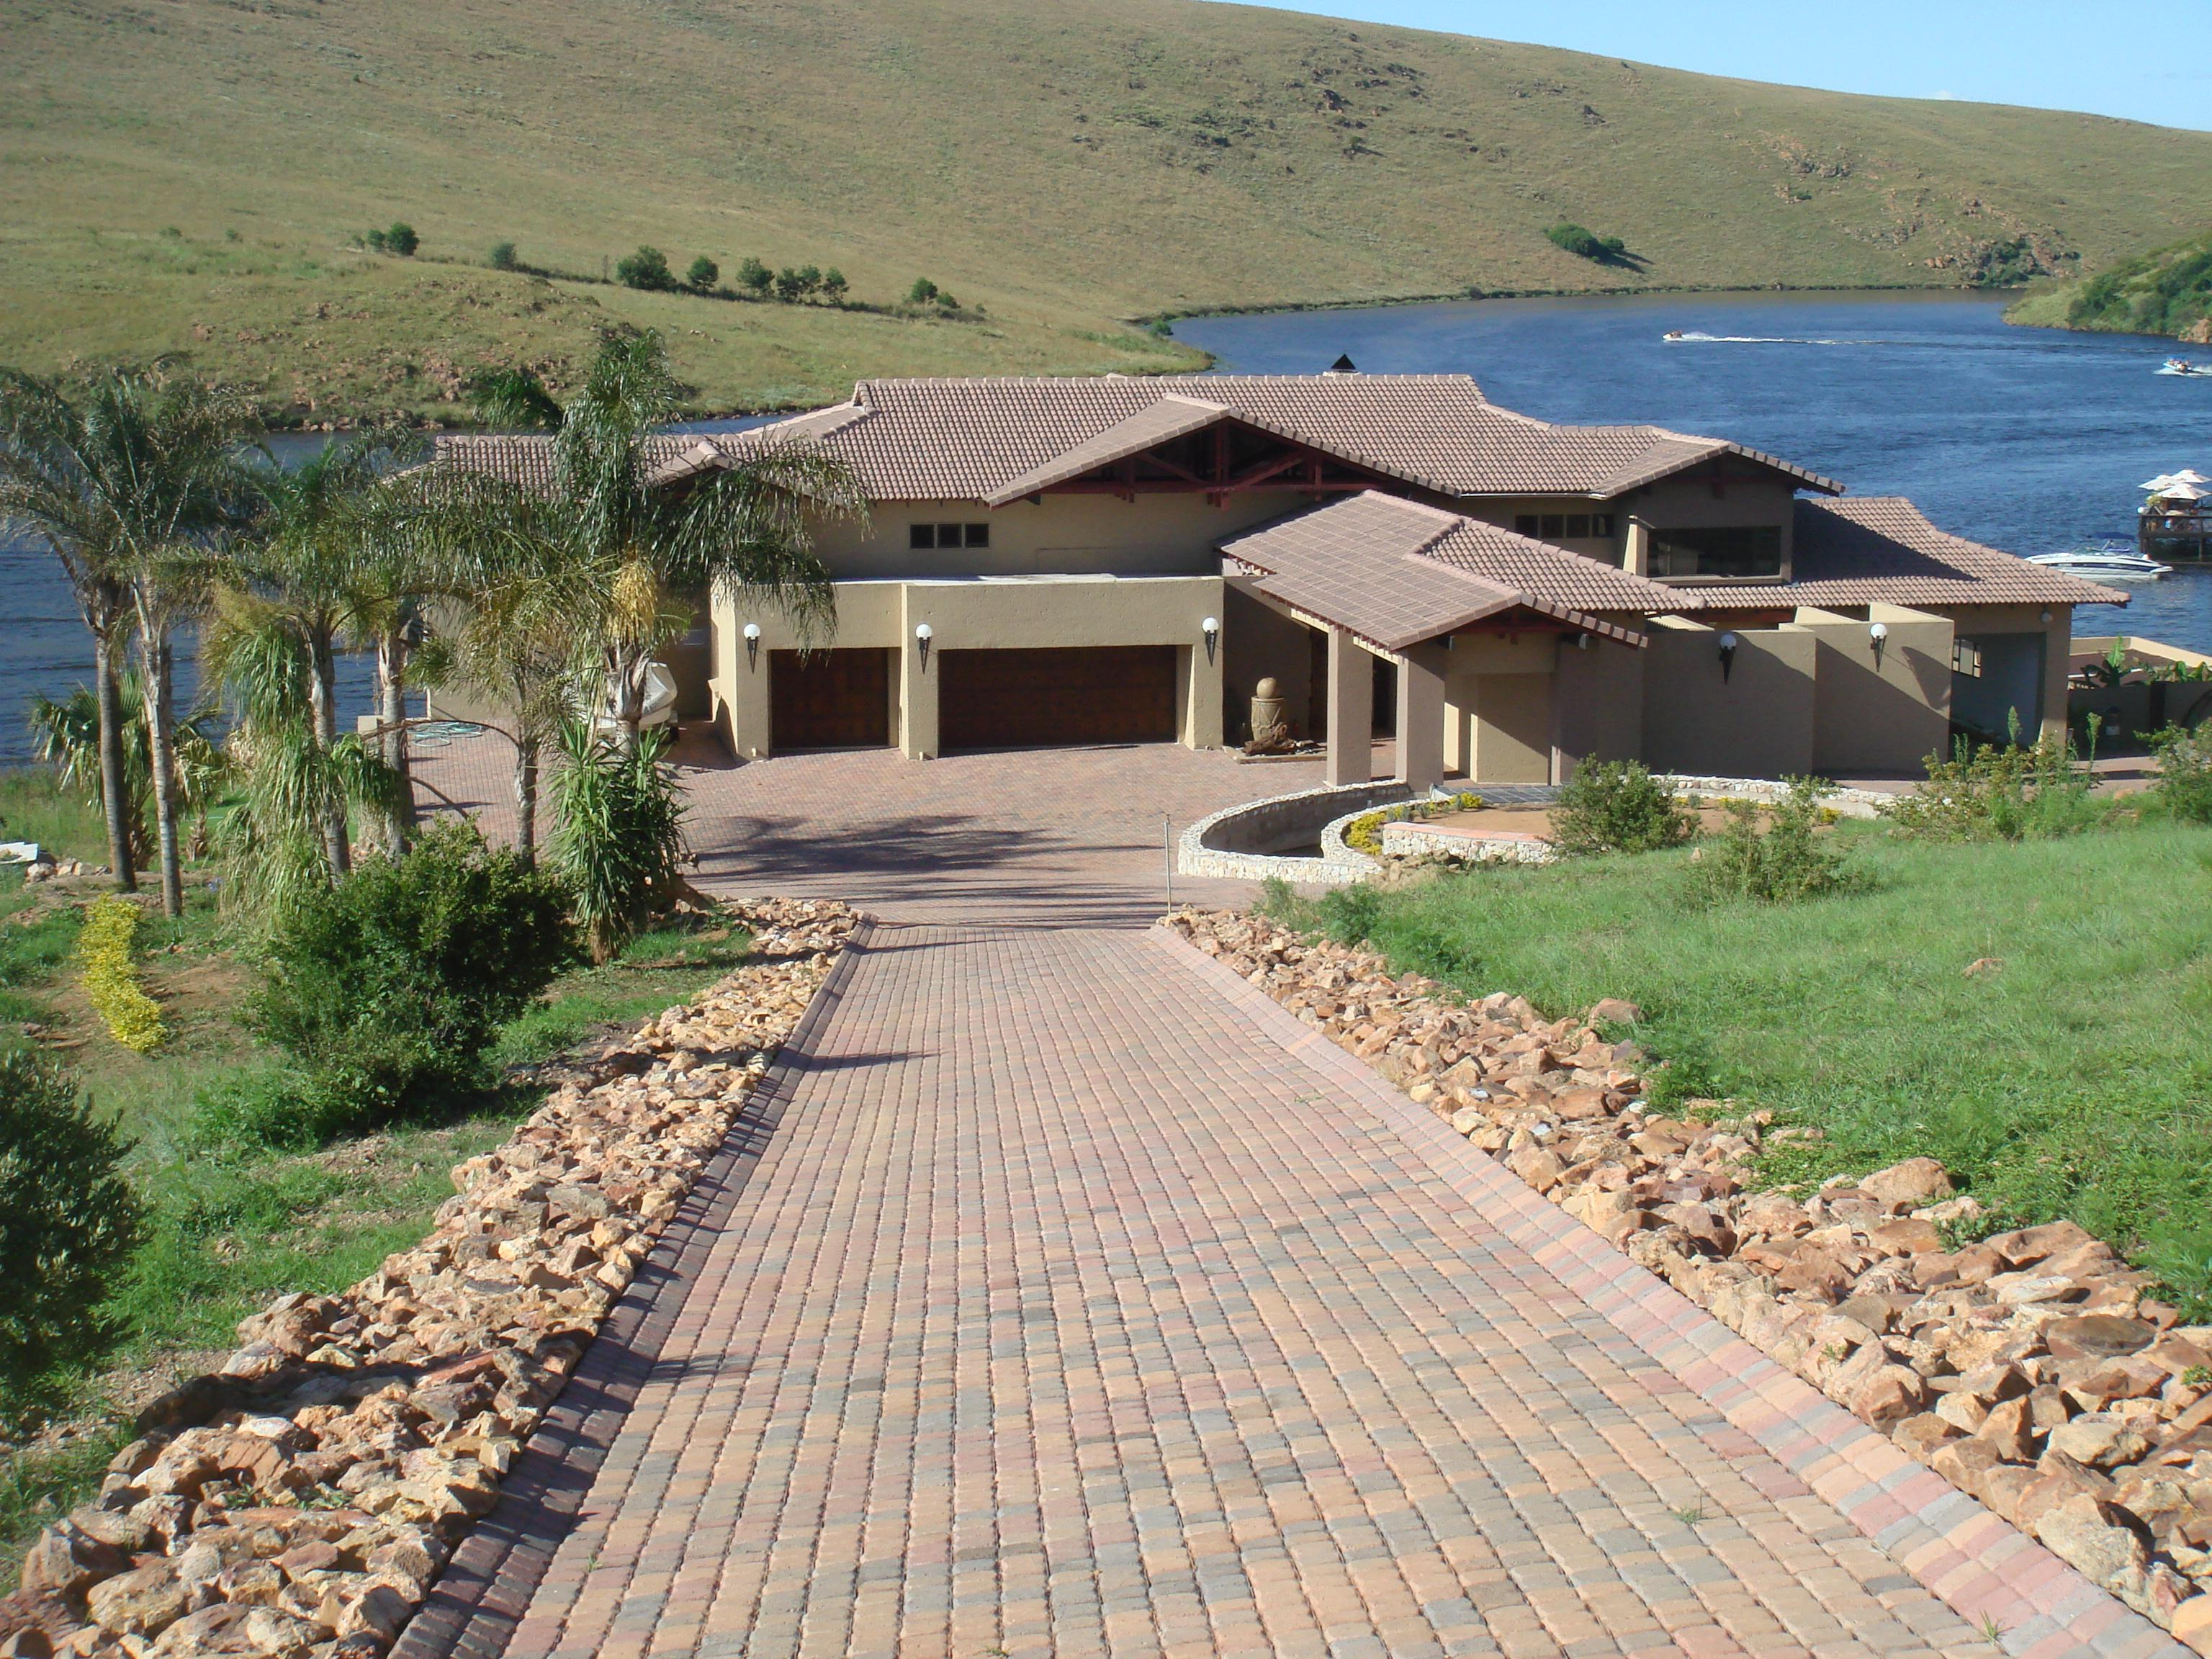 5 Bedroom House For Sale in Emalahleni (Witbank)  - Private Sale - MR129991